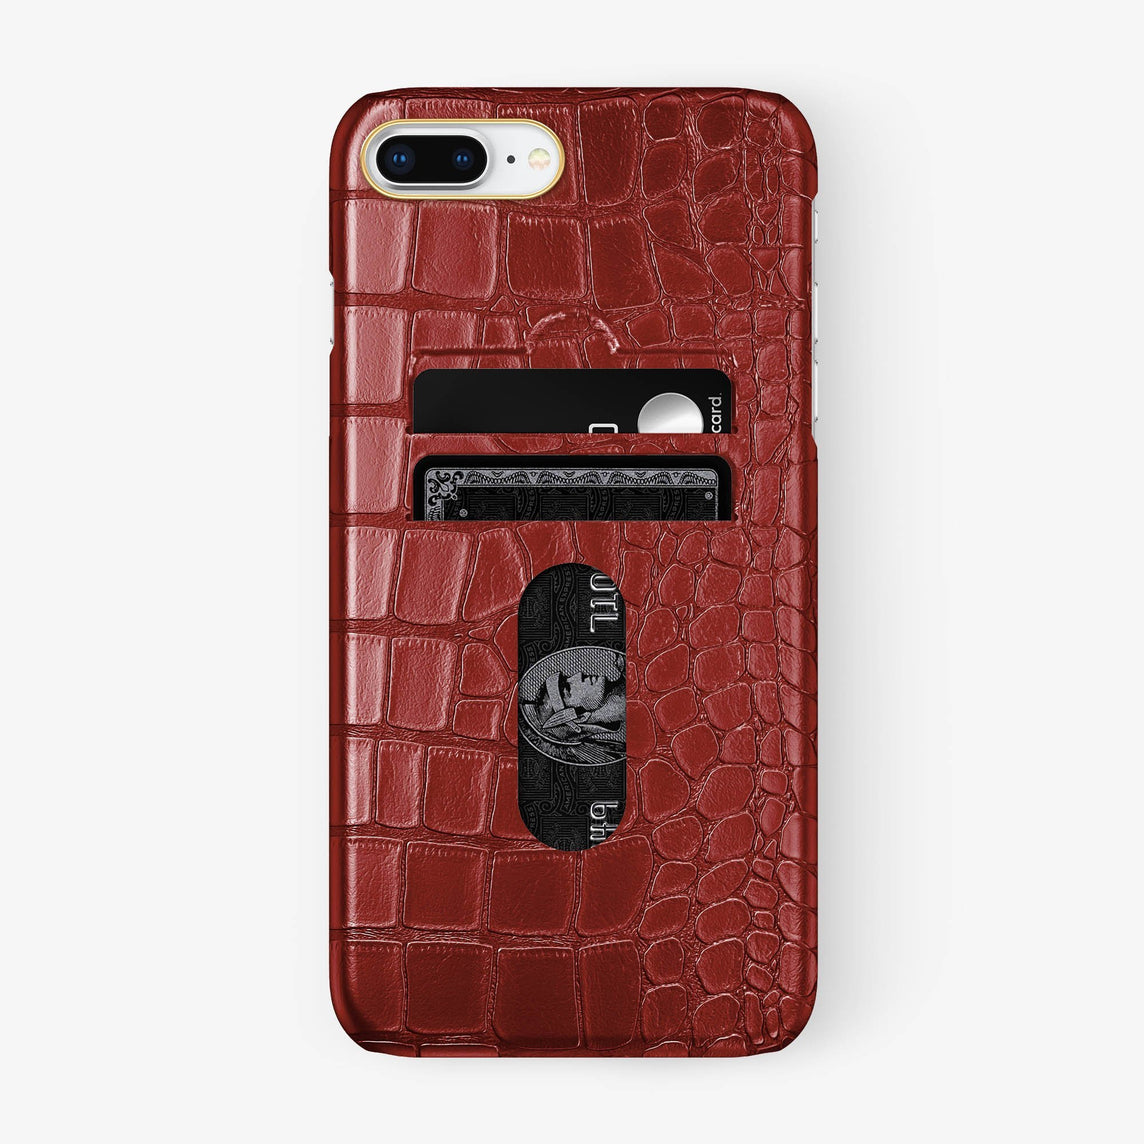 Alligator Card Holder Case iPhone 7/8 Plus | Red - Yellow Gold